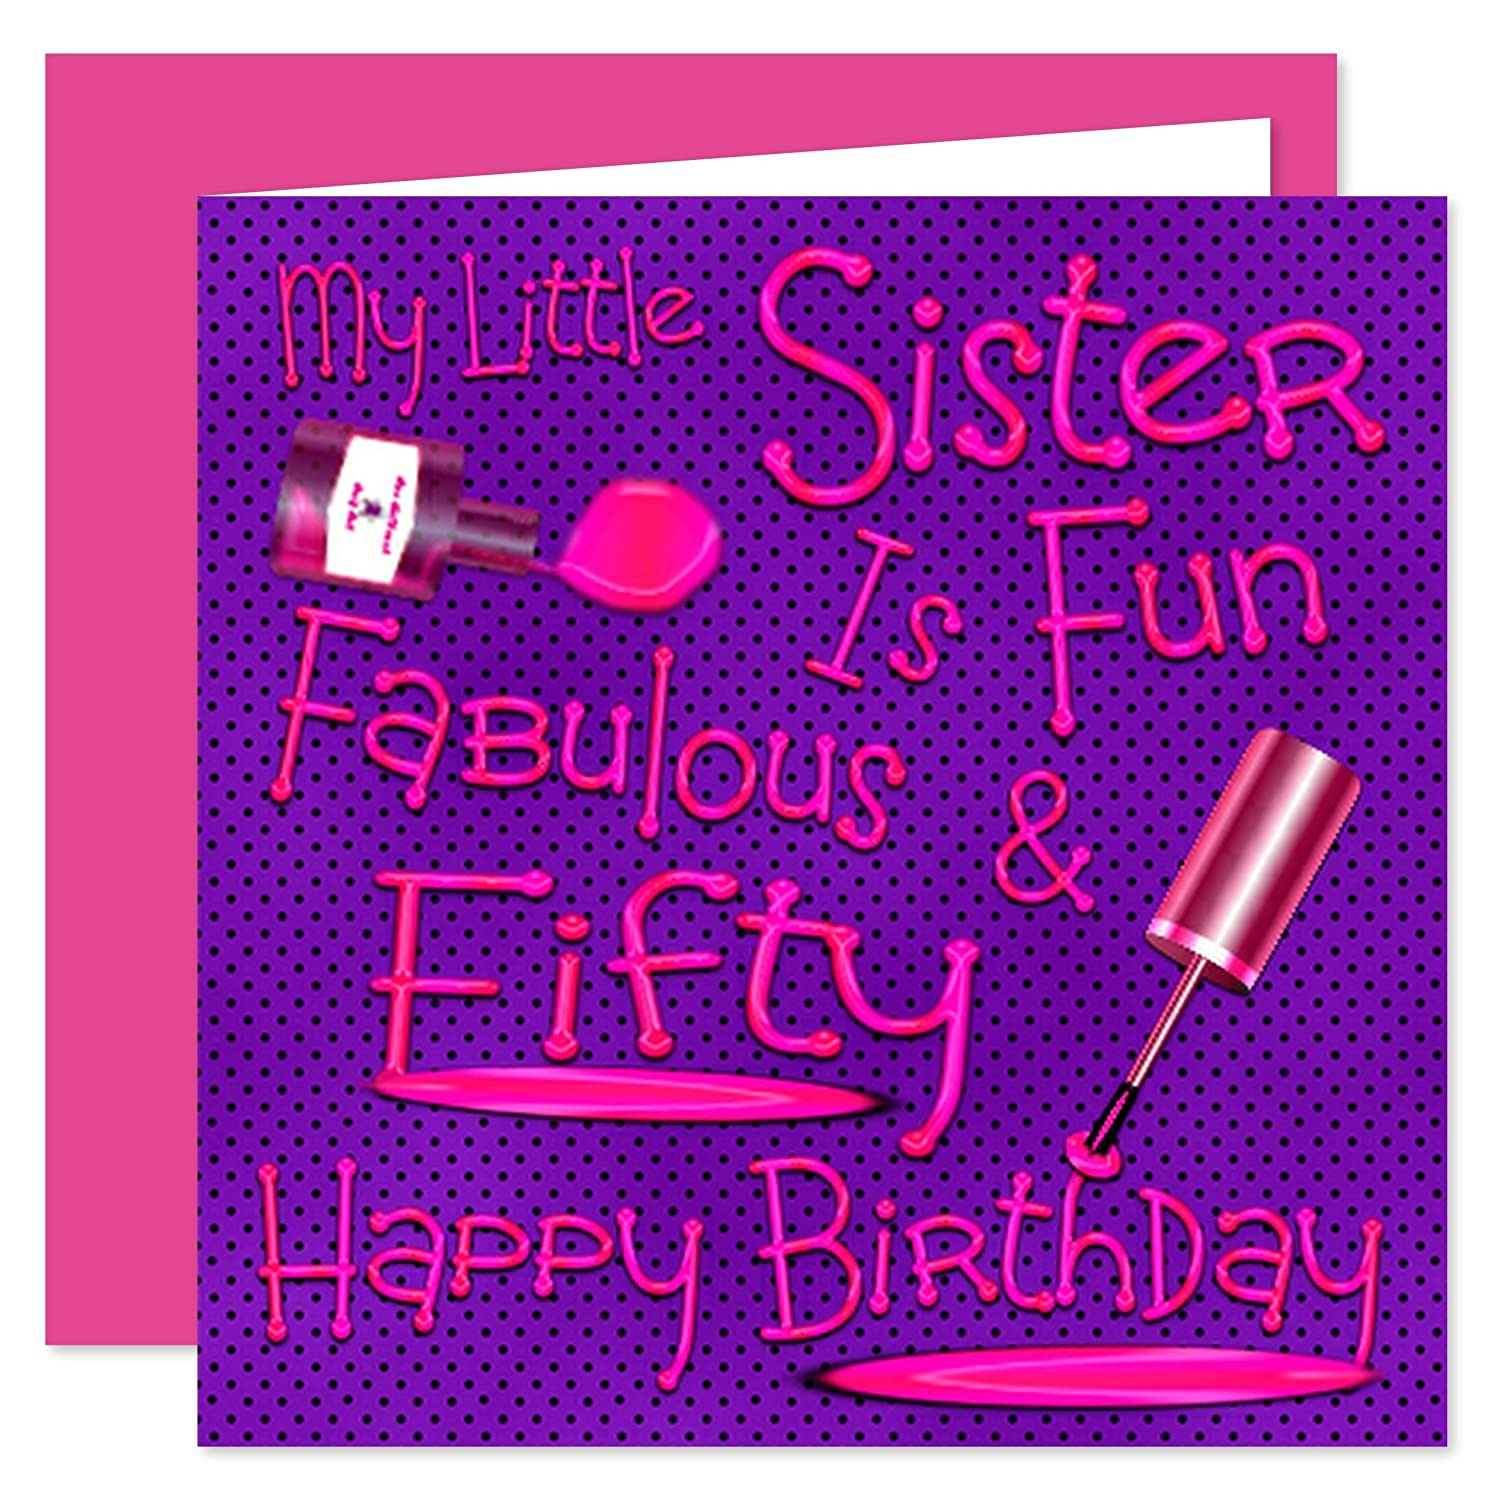 My Little Sister 50th Happy Birthday Card